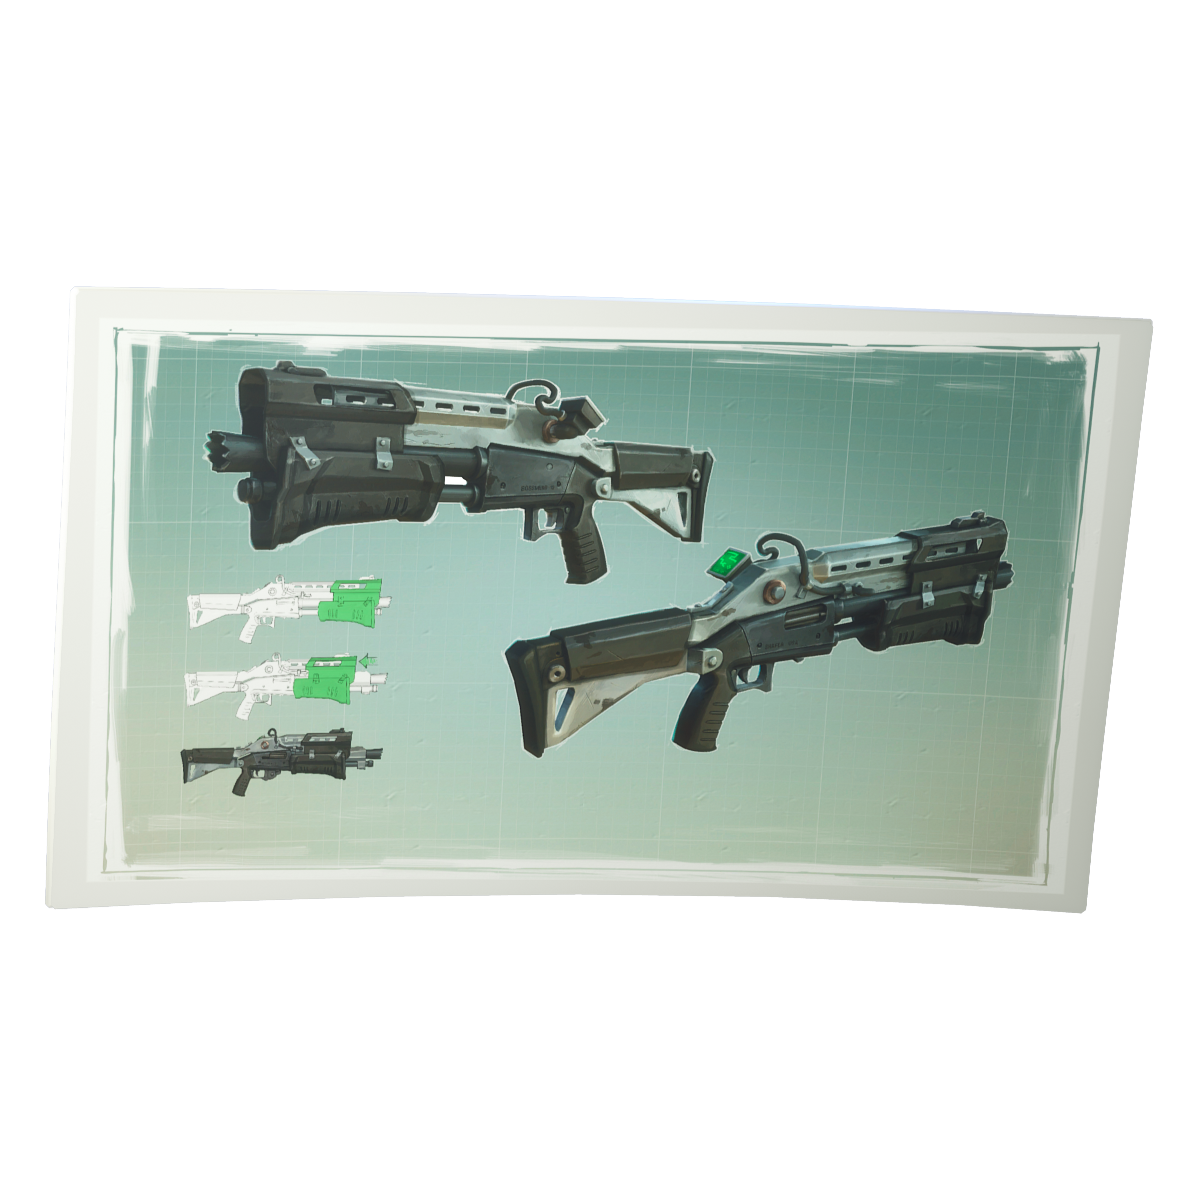 Fortnite shotgun png. Tactical image purepng free